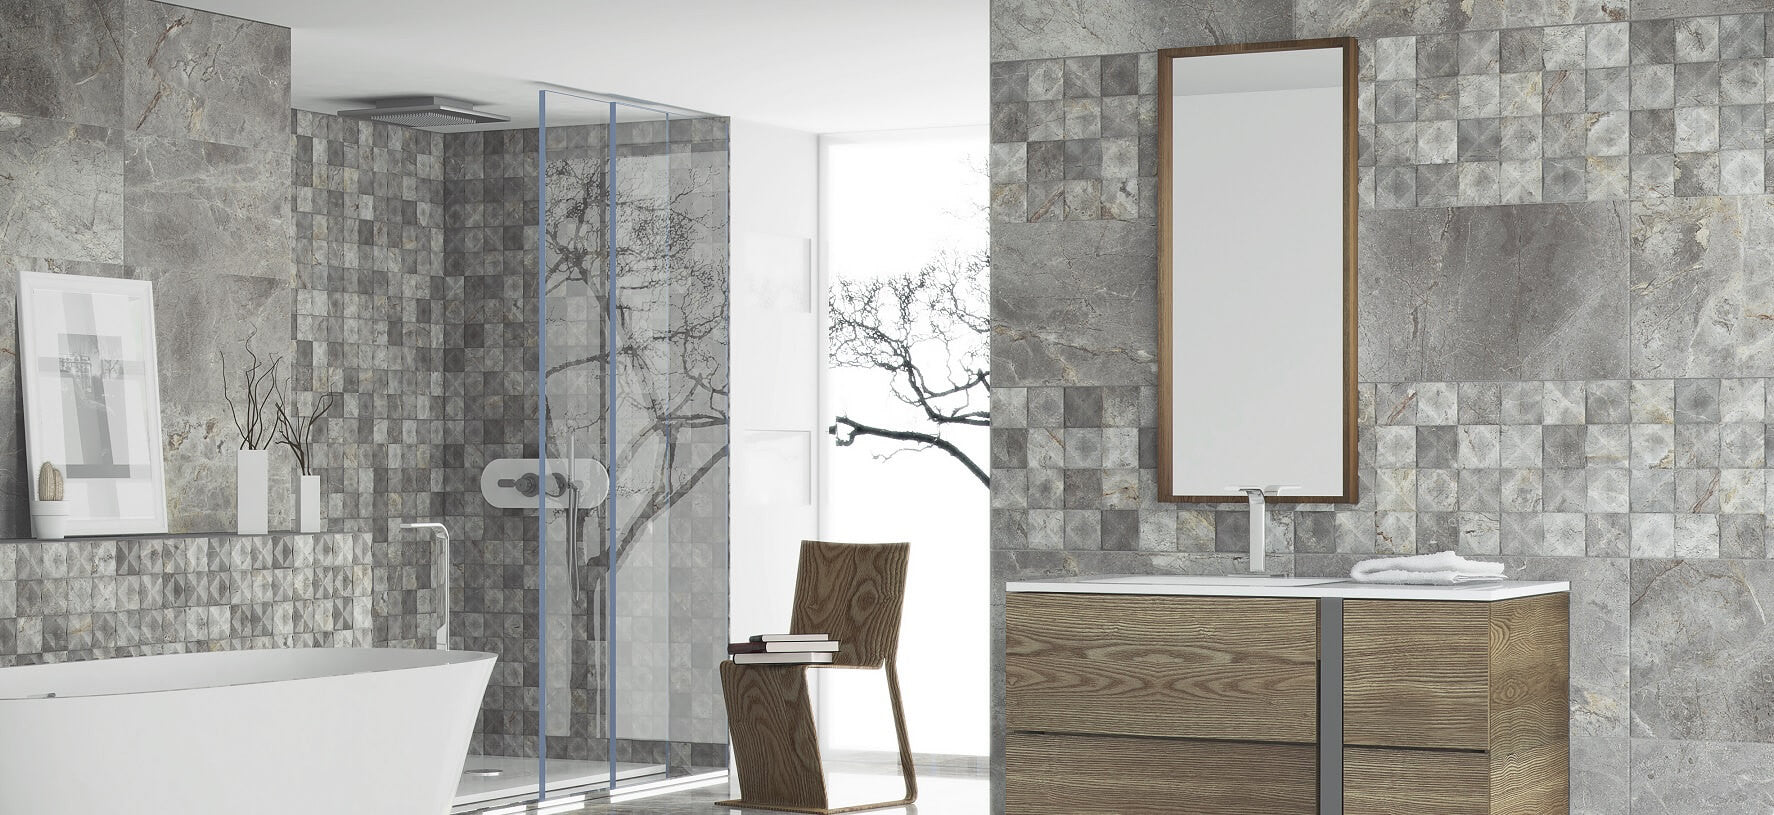 Bathroom Wall Tiles: On-Trend Grey Marble Effect